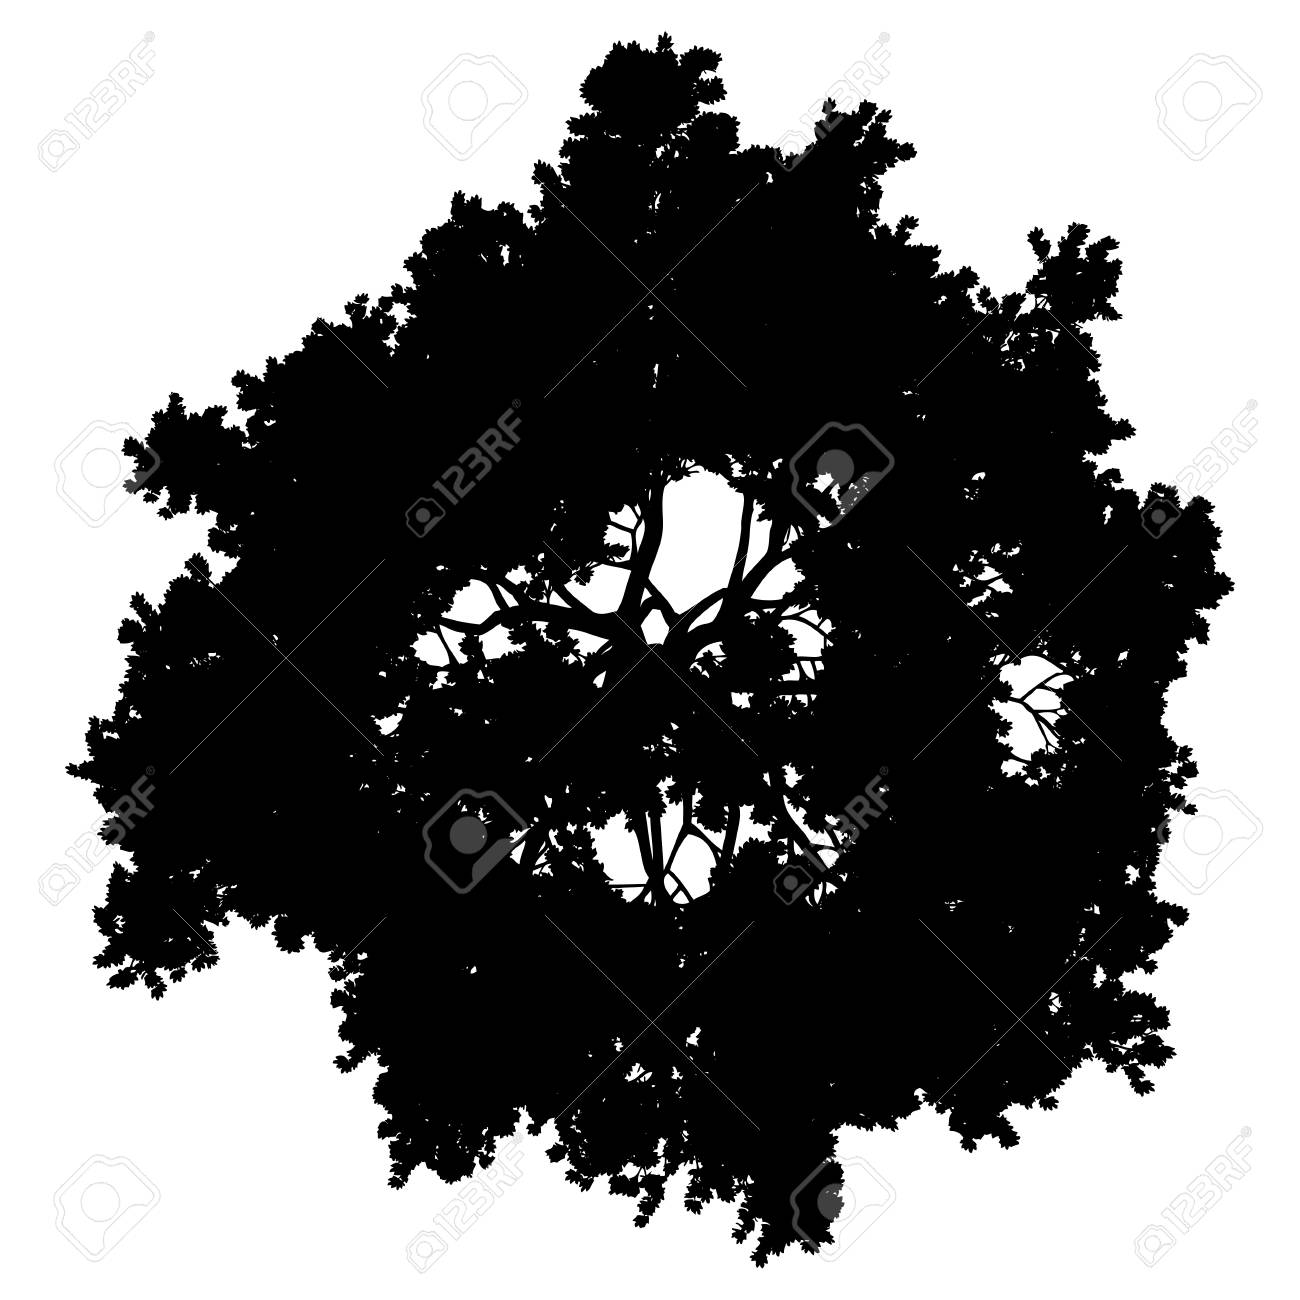 Tree top silhouette isolated - black simple detailed - vector illustration - 126008018